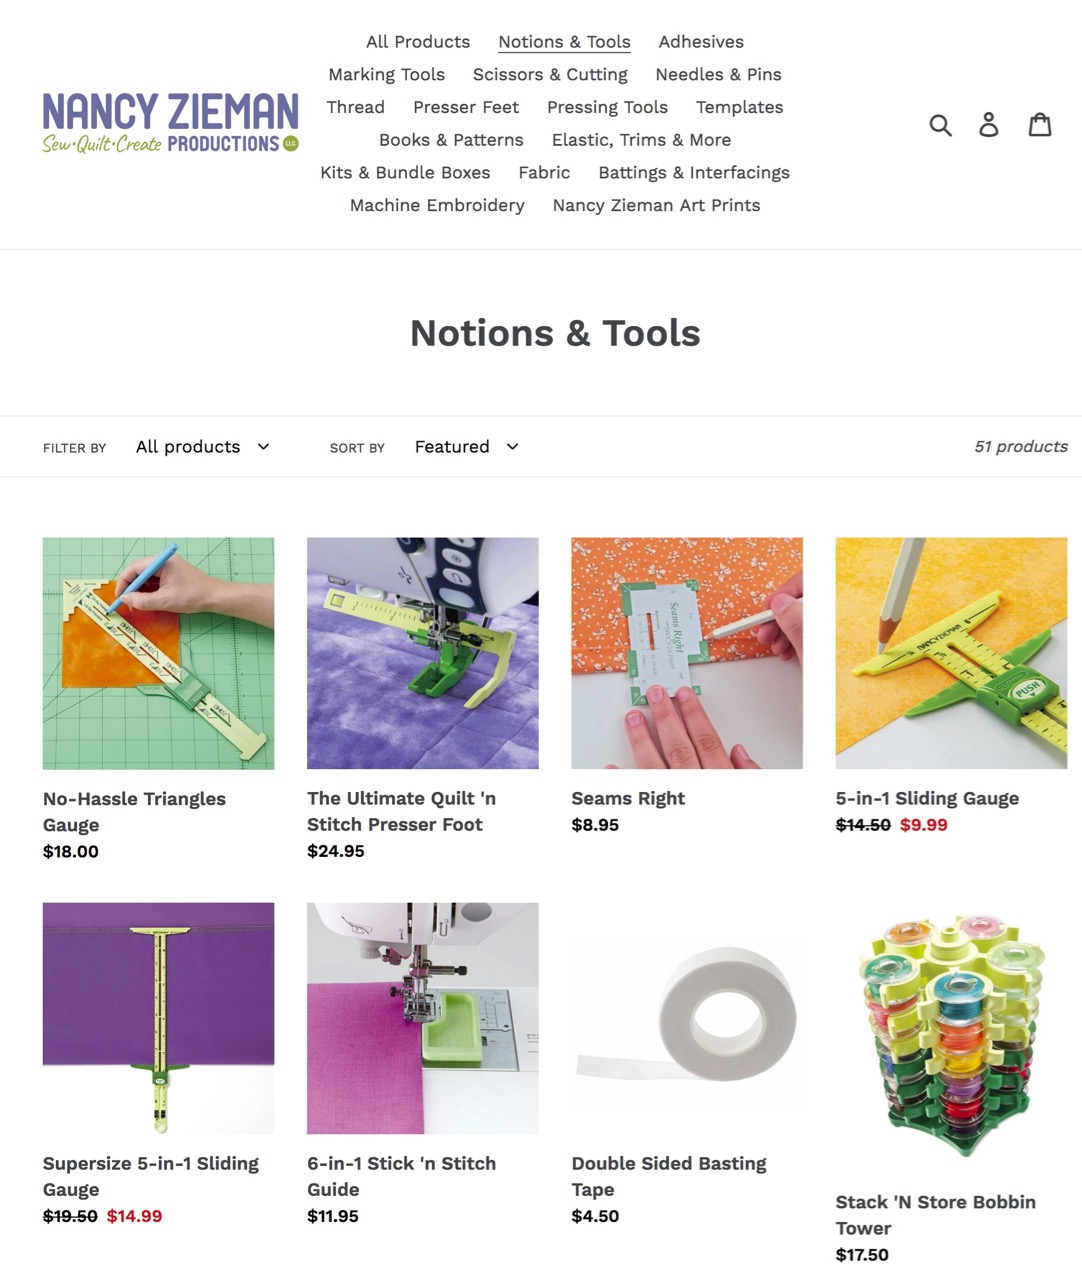 Shop Notions and Tools at shopnzp.com